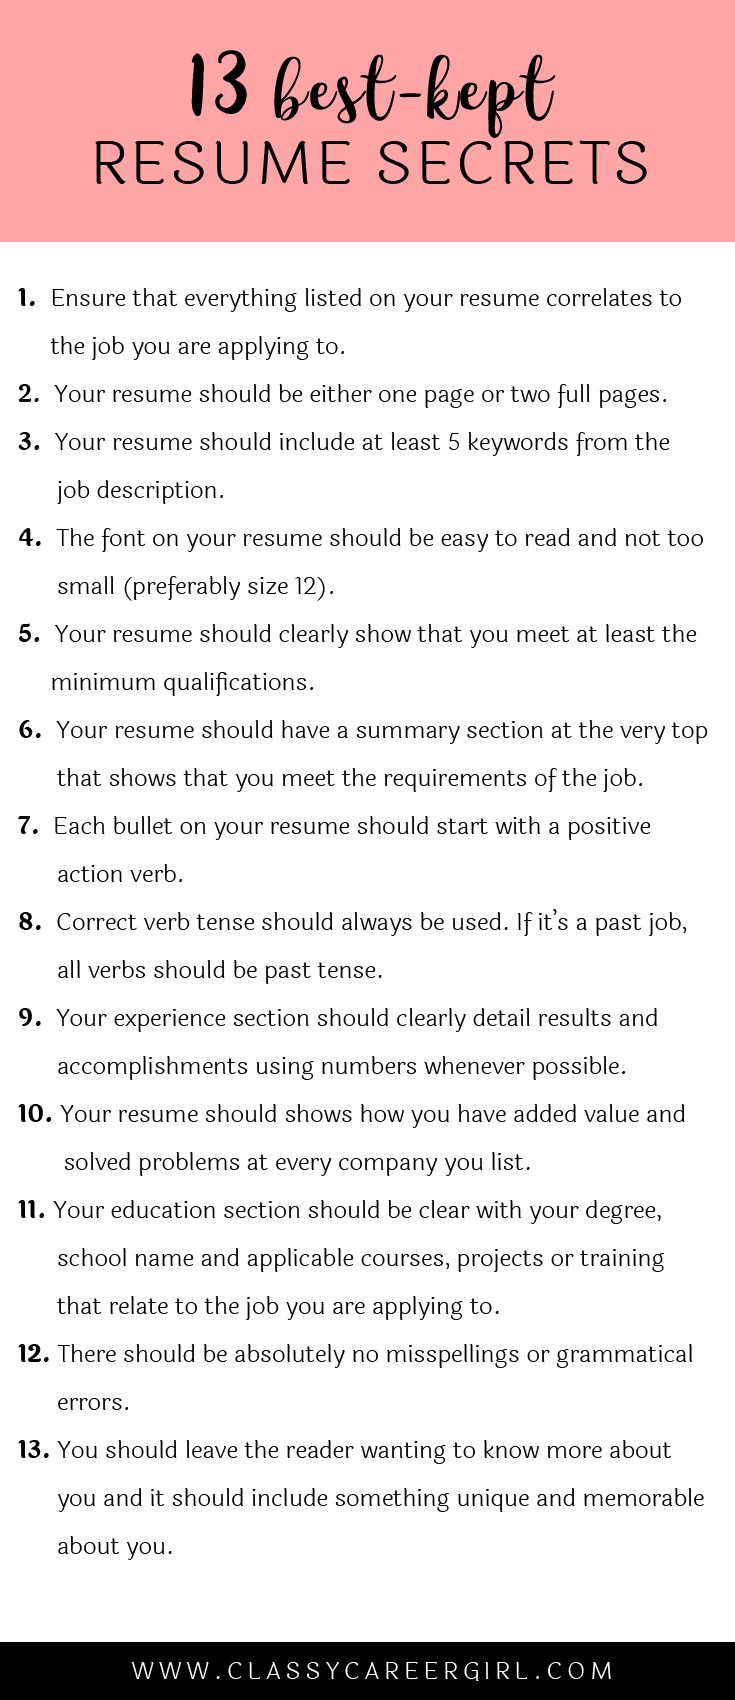 Opposenewapstandardsus  Nice  Ideas About Resume On Pinterest  Cv Format Resume Cv And  With Foxy Some Hiring Managers Will Toss Your Resume Out If You Dont Know These  With Delectable Resume Objective For College Student Also Data Entry Resume Sample In Addition Inside Sales Representative Resume And Warehouse Duties Resume As Well As How To Write An Academic Resume Additionally Sample Chef Resume From Pinterestcom With Opposenewapstandardsus  Foxy  Ideas About Resume On Pinterest  Cv Format Resume Cv And  With Delectable Some Hiring Managers Will Toss Your Resume Out If You Dont Know These  And Nice Resume Objective For College Student Also Data Entry Resume Sample In Addition Inside Sales Representative Resume From Pinterestcom